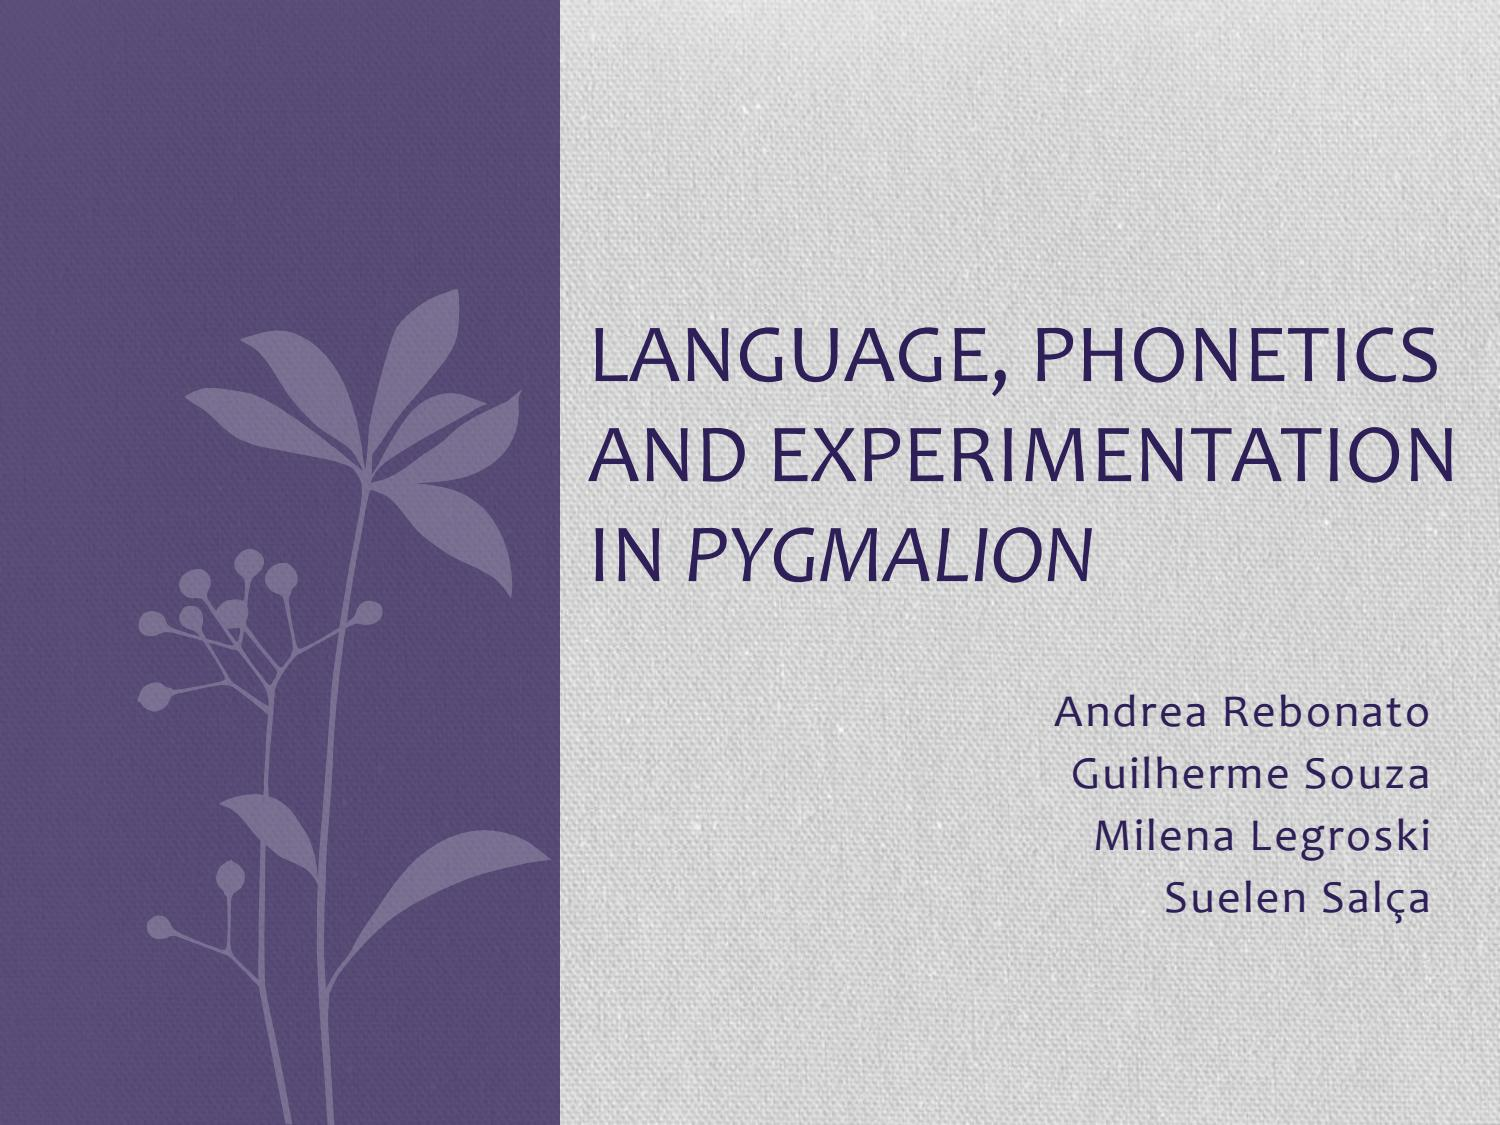 language phonetics and experimentation in pyg on by milena language phonetics and experimentation in pyg on by milena legroski issuu